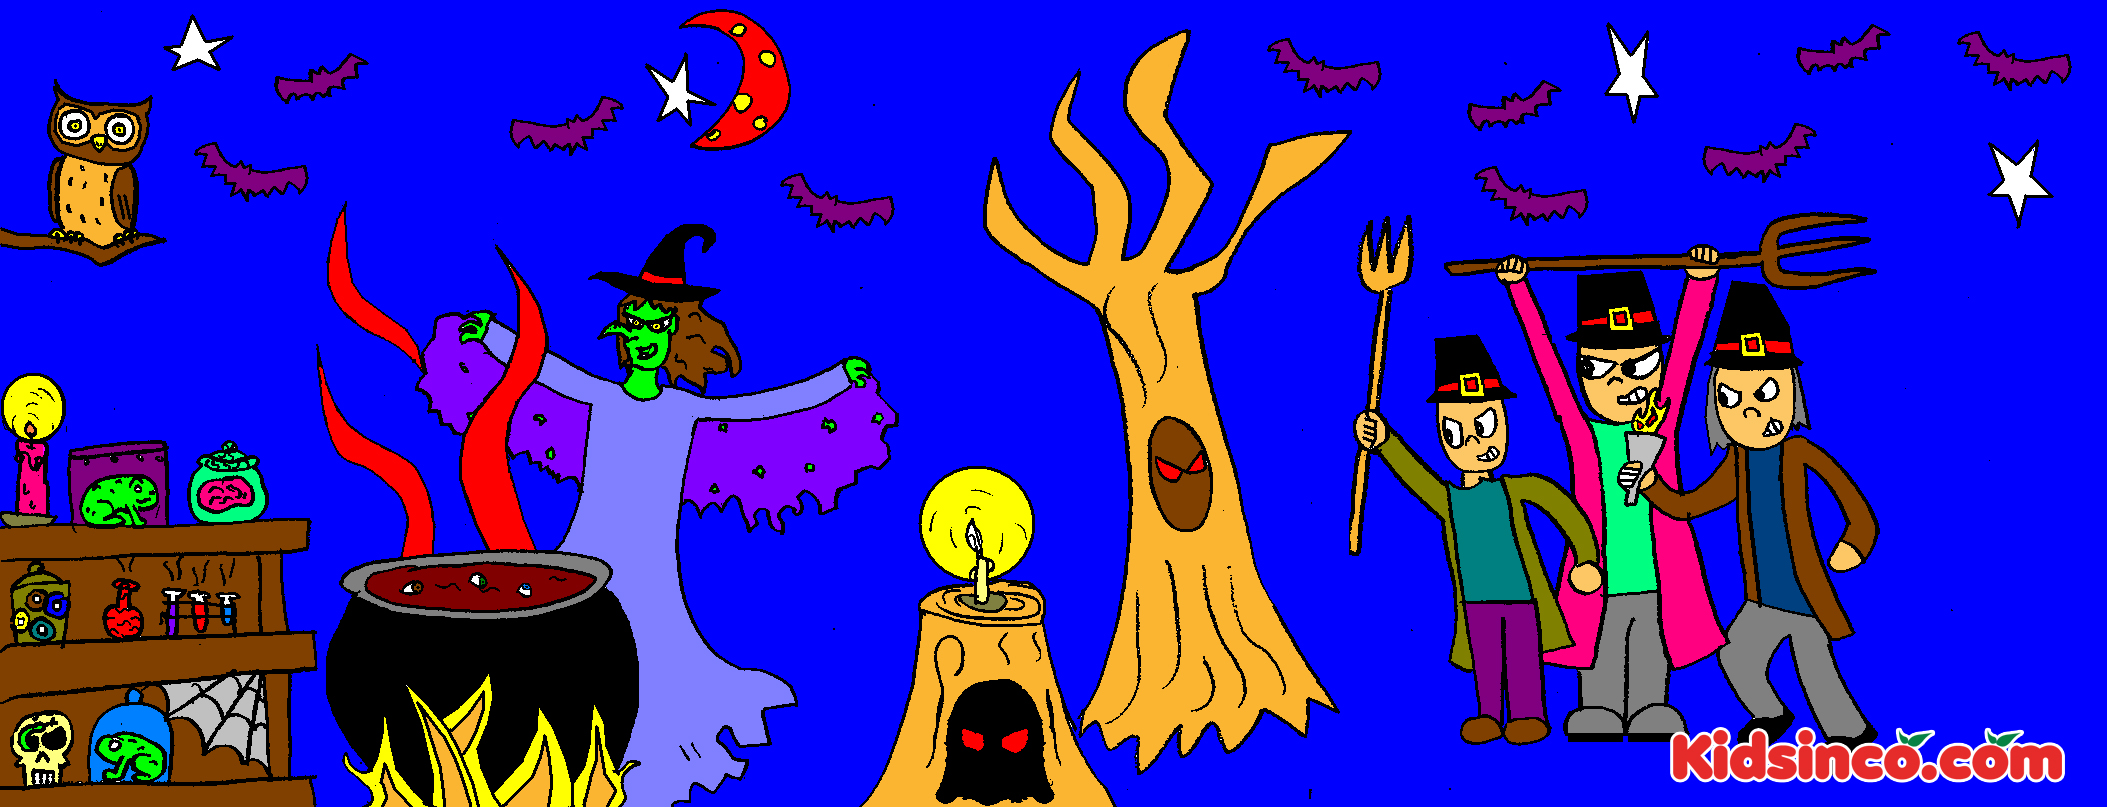 Witch clipart salem witch trials I Witches Kids! for K